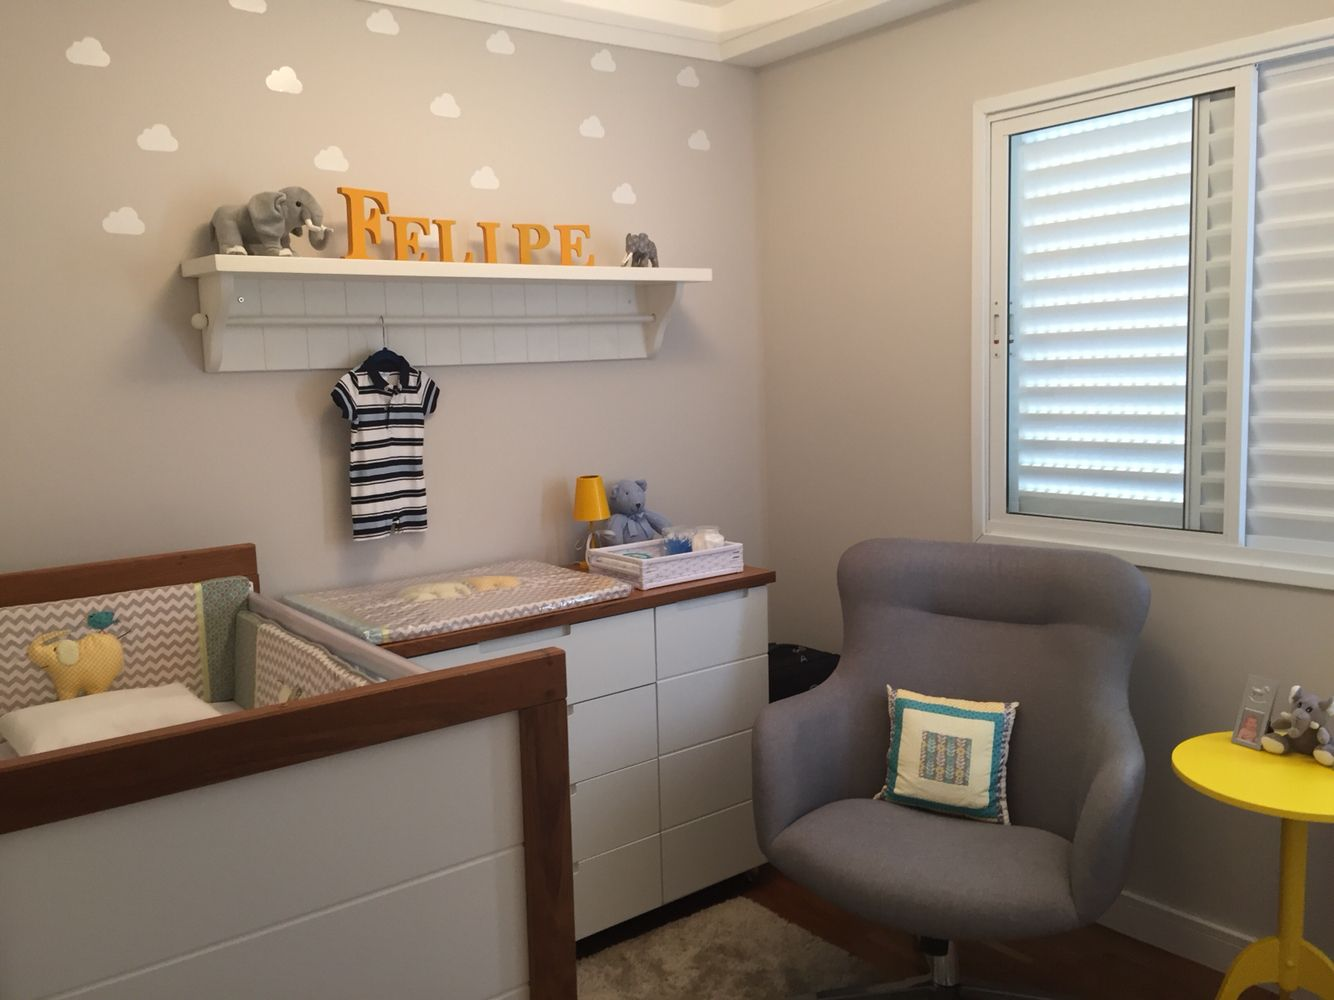 Baby Nursery Grey And Yellow Quarto De Beb Elefantes Decora O  ~ Quarto De Bebe Retro E Quarto Casal Decoracao